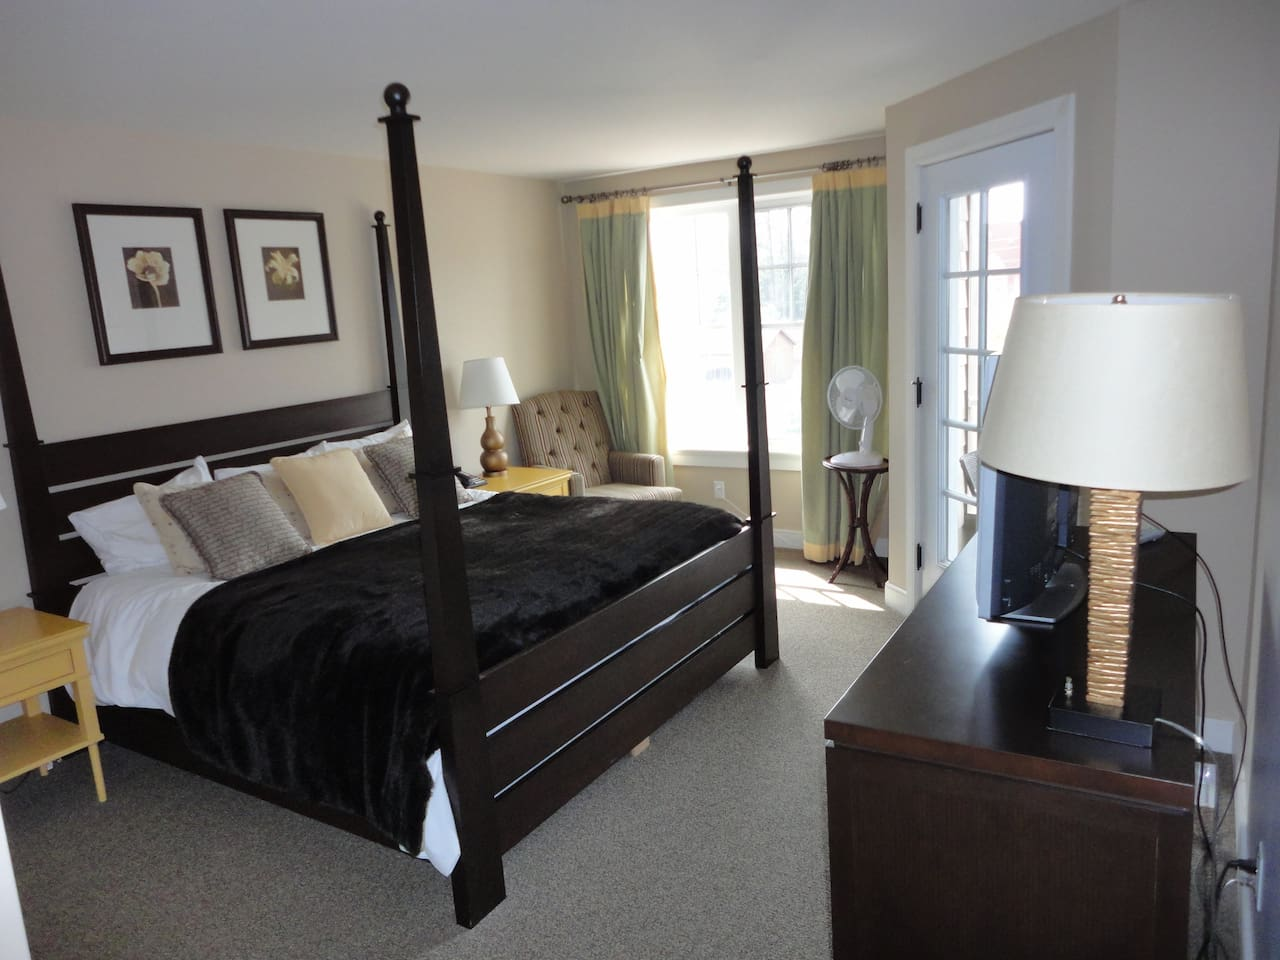 Master Bedroom with King Sized Bed & Ensuite Bathroom